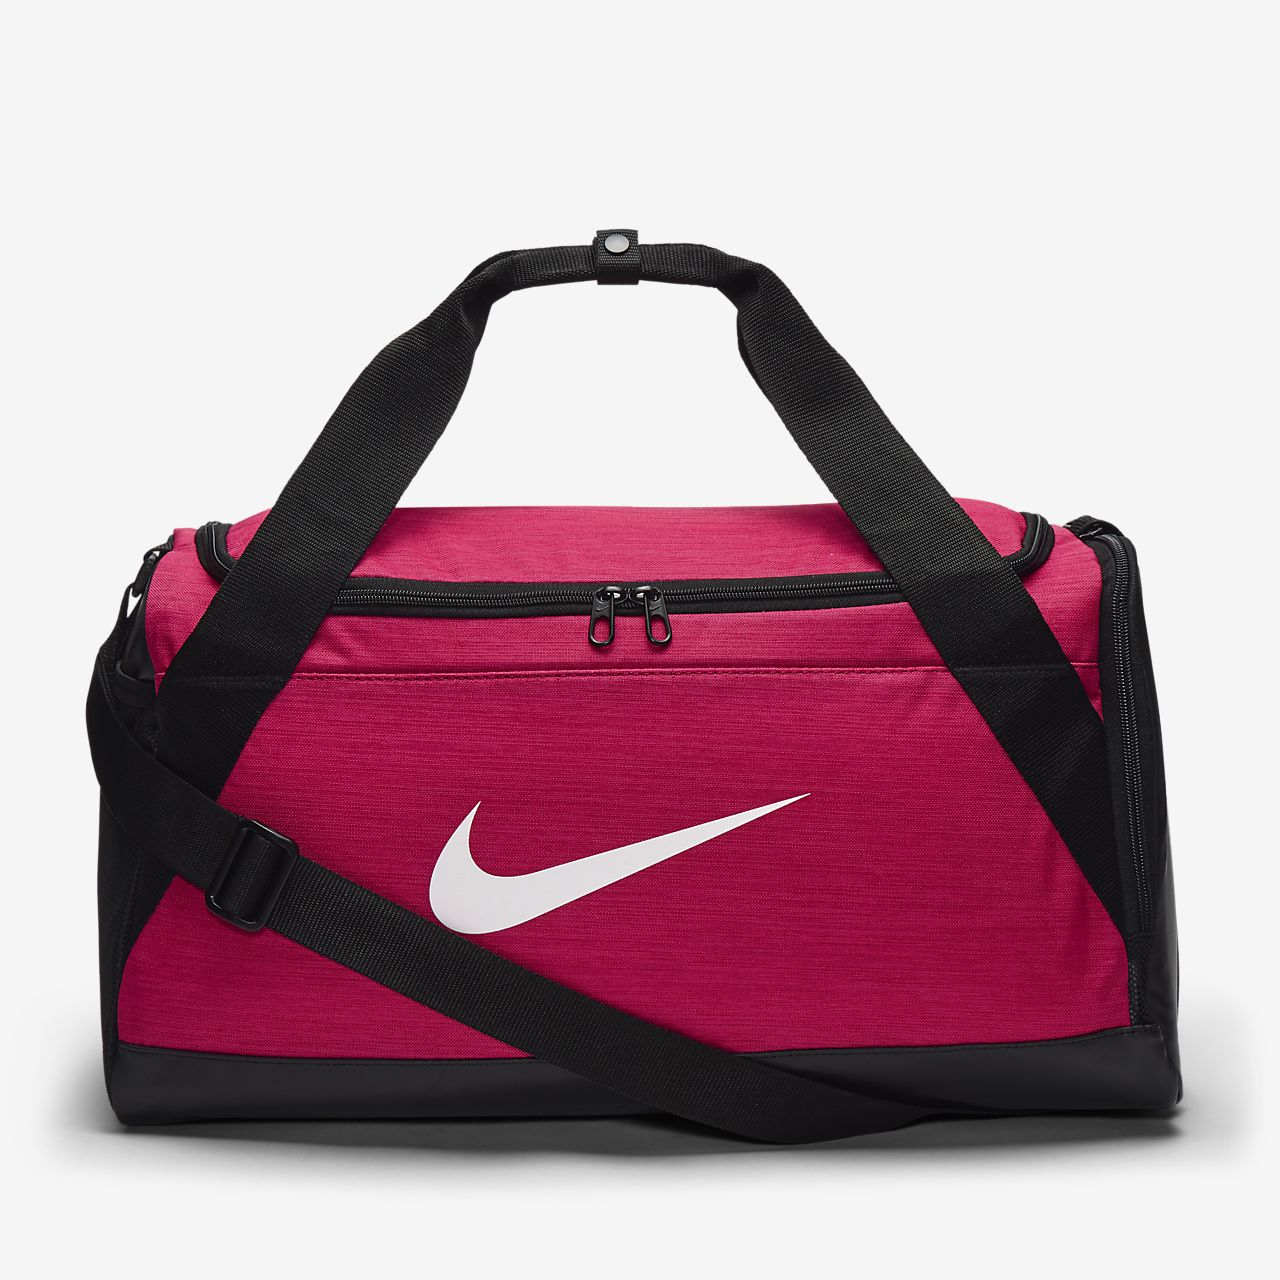 ea3e759825 Nike Brasilia (Small) Training Duffel Bag. Nike.com GB